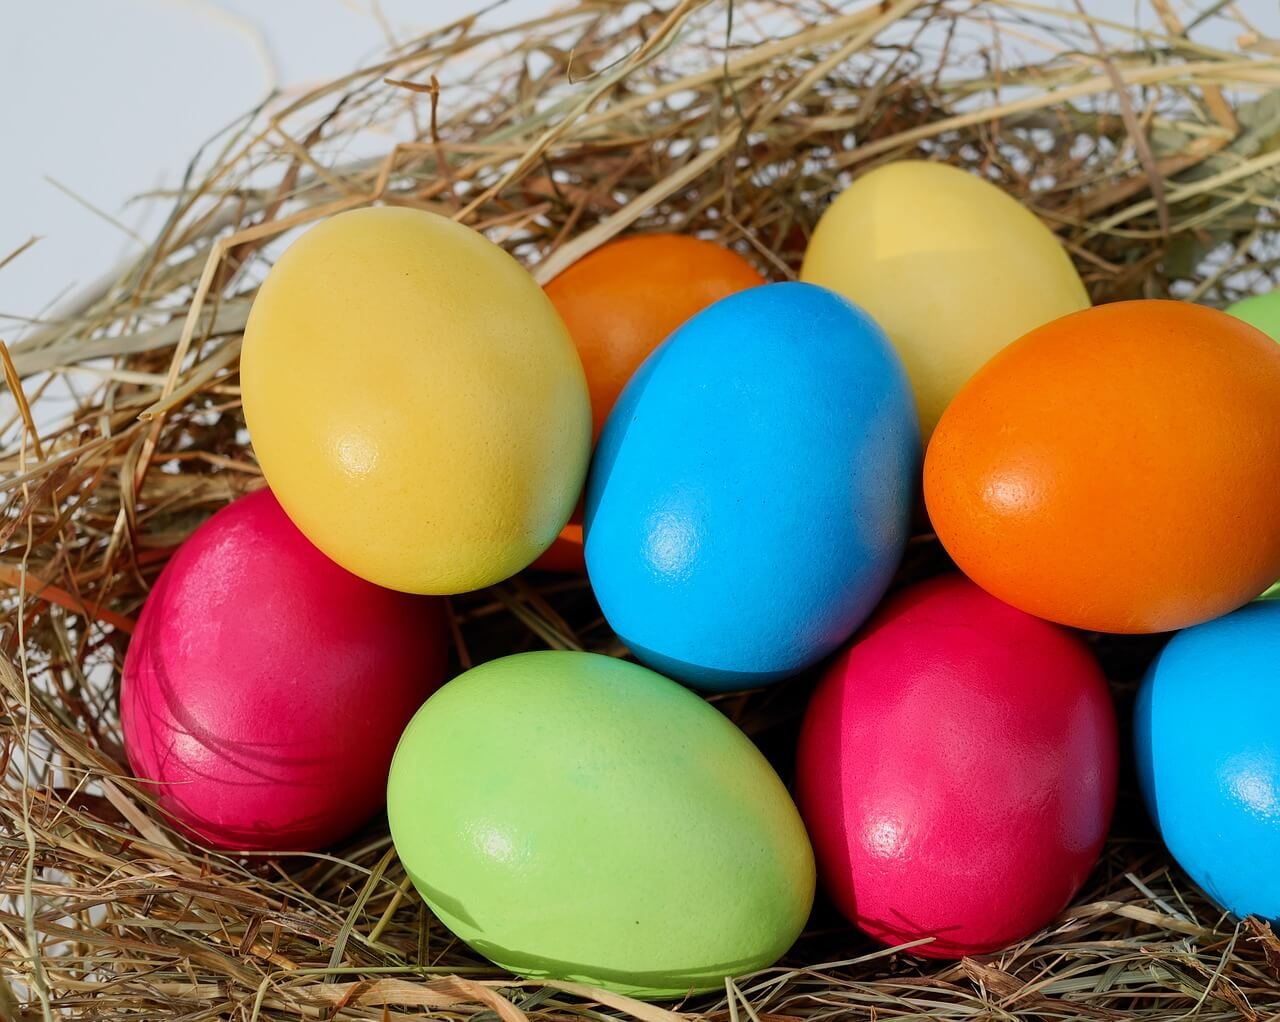 Eggs in the nest, easter traditions in Belarus